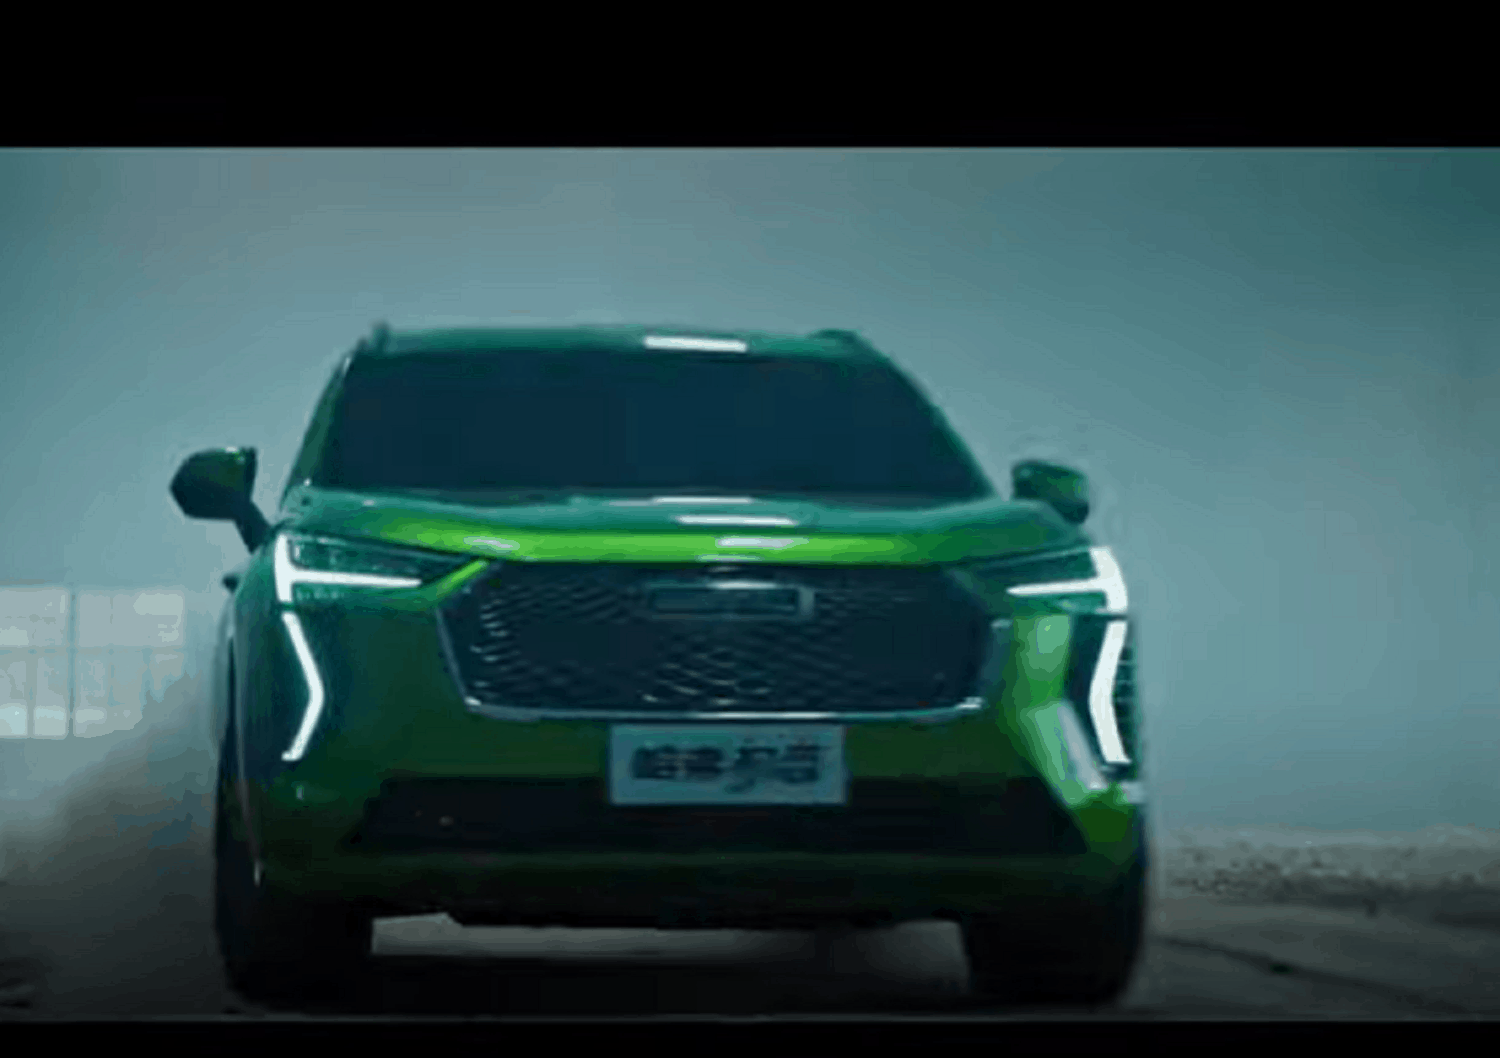 Haval's ad for the Jolion SUV